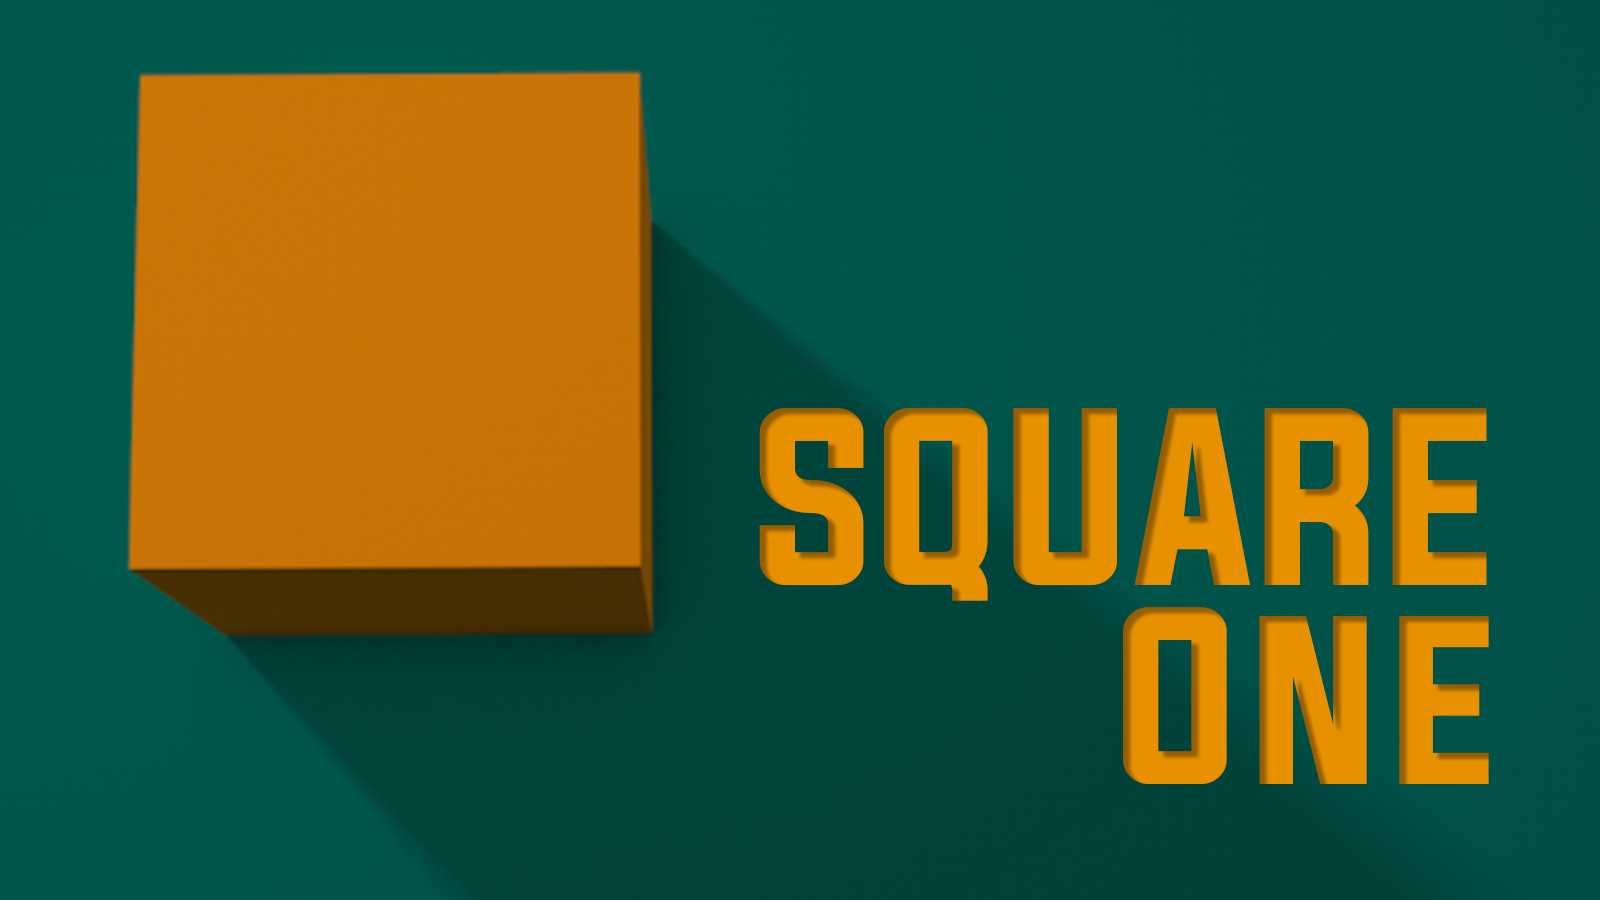 Square one digital media and design logo